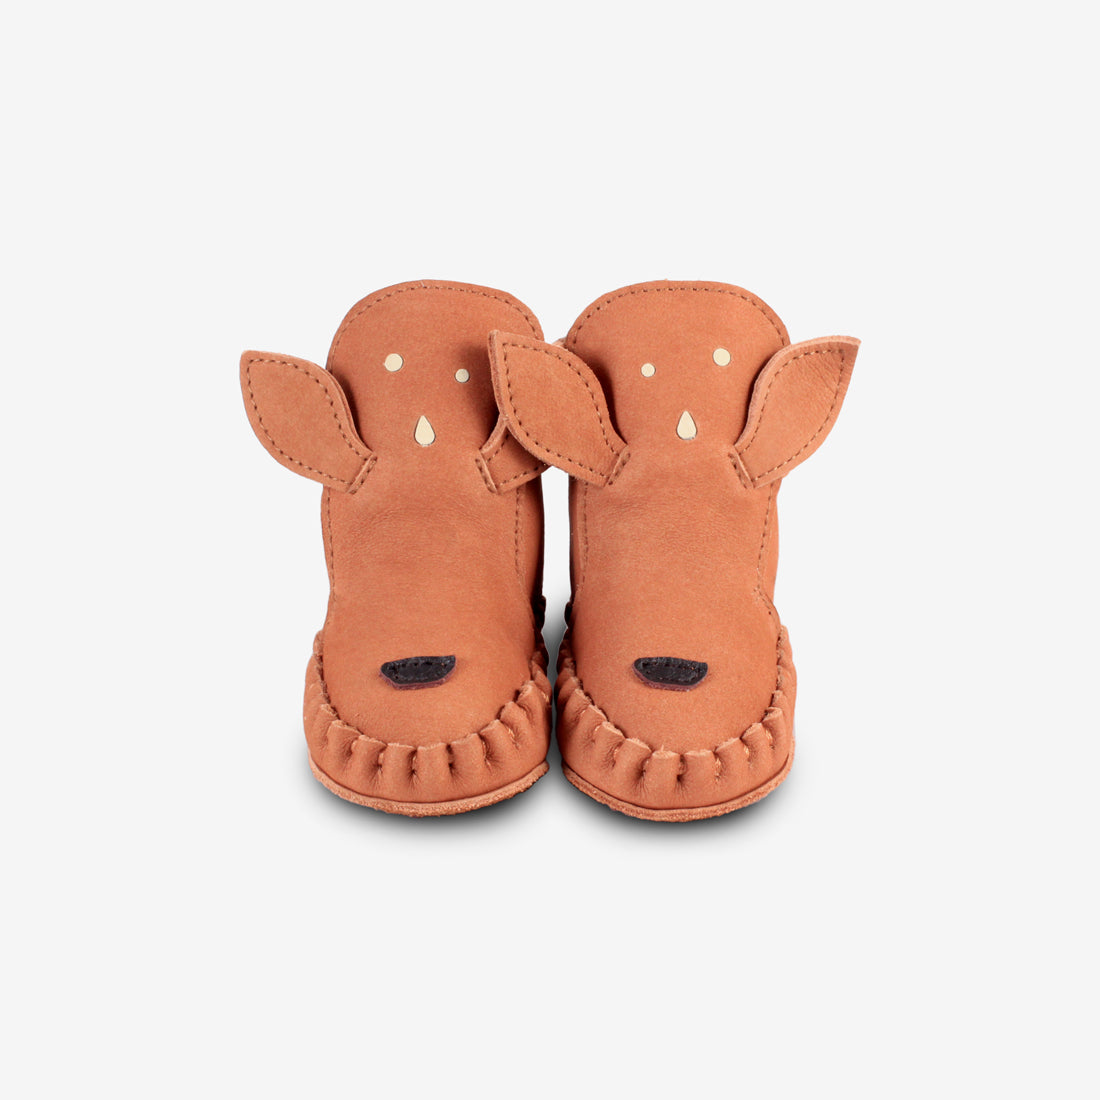 KAPI Shearling Leather Baby Boots - Fawn